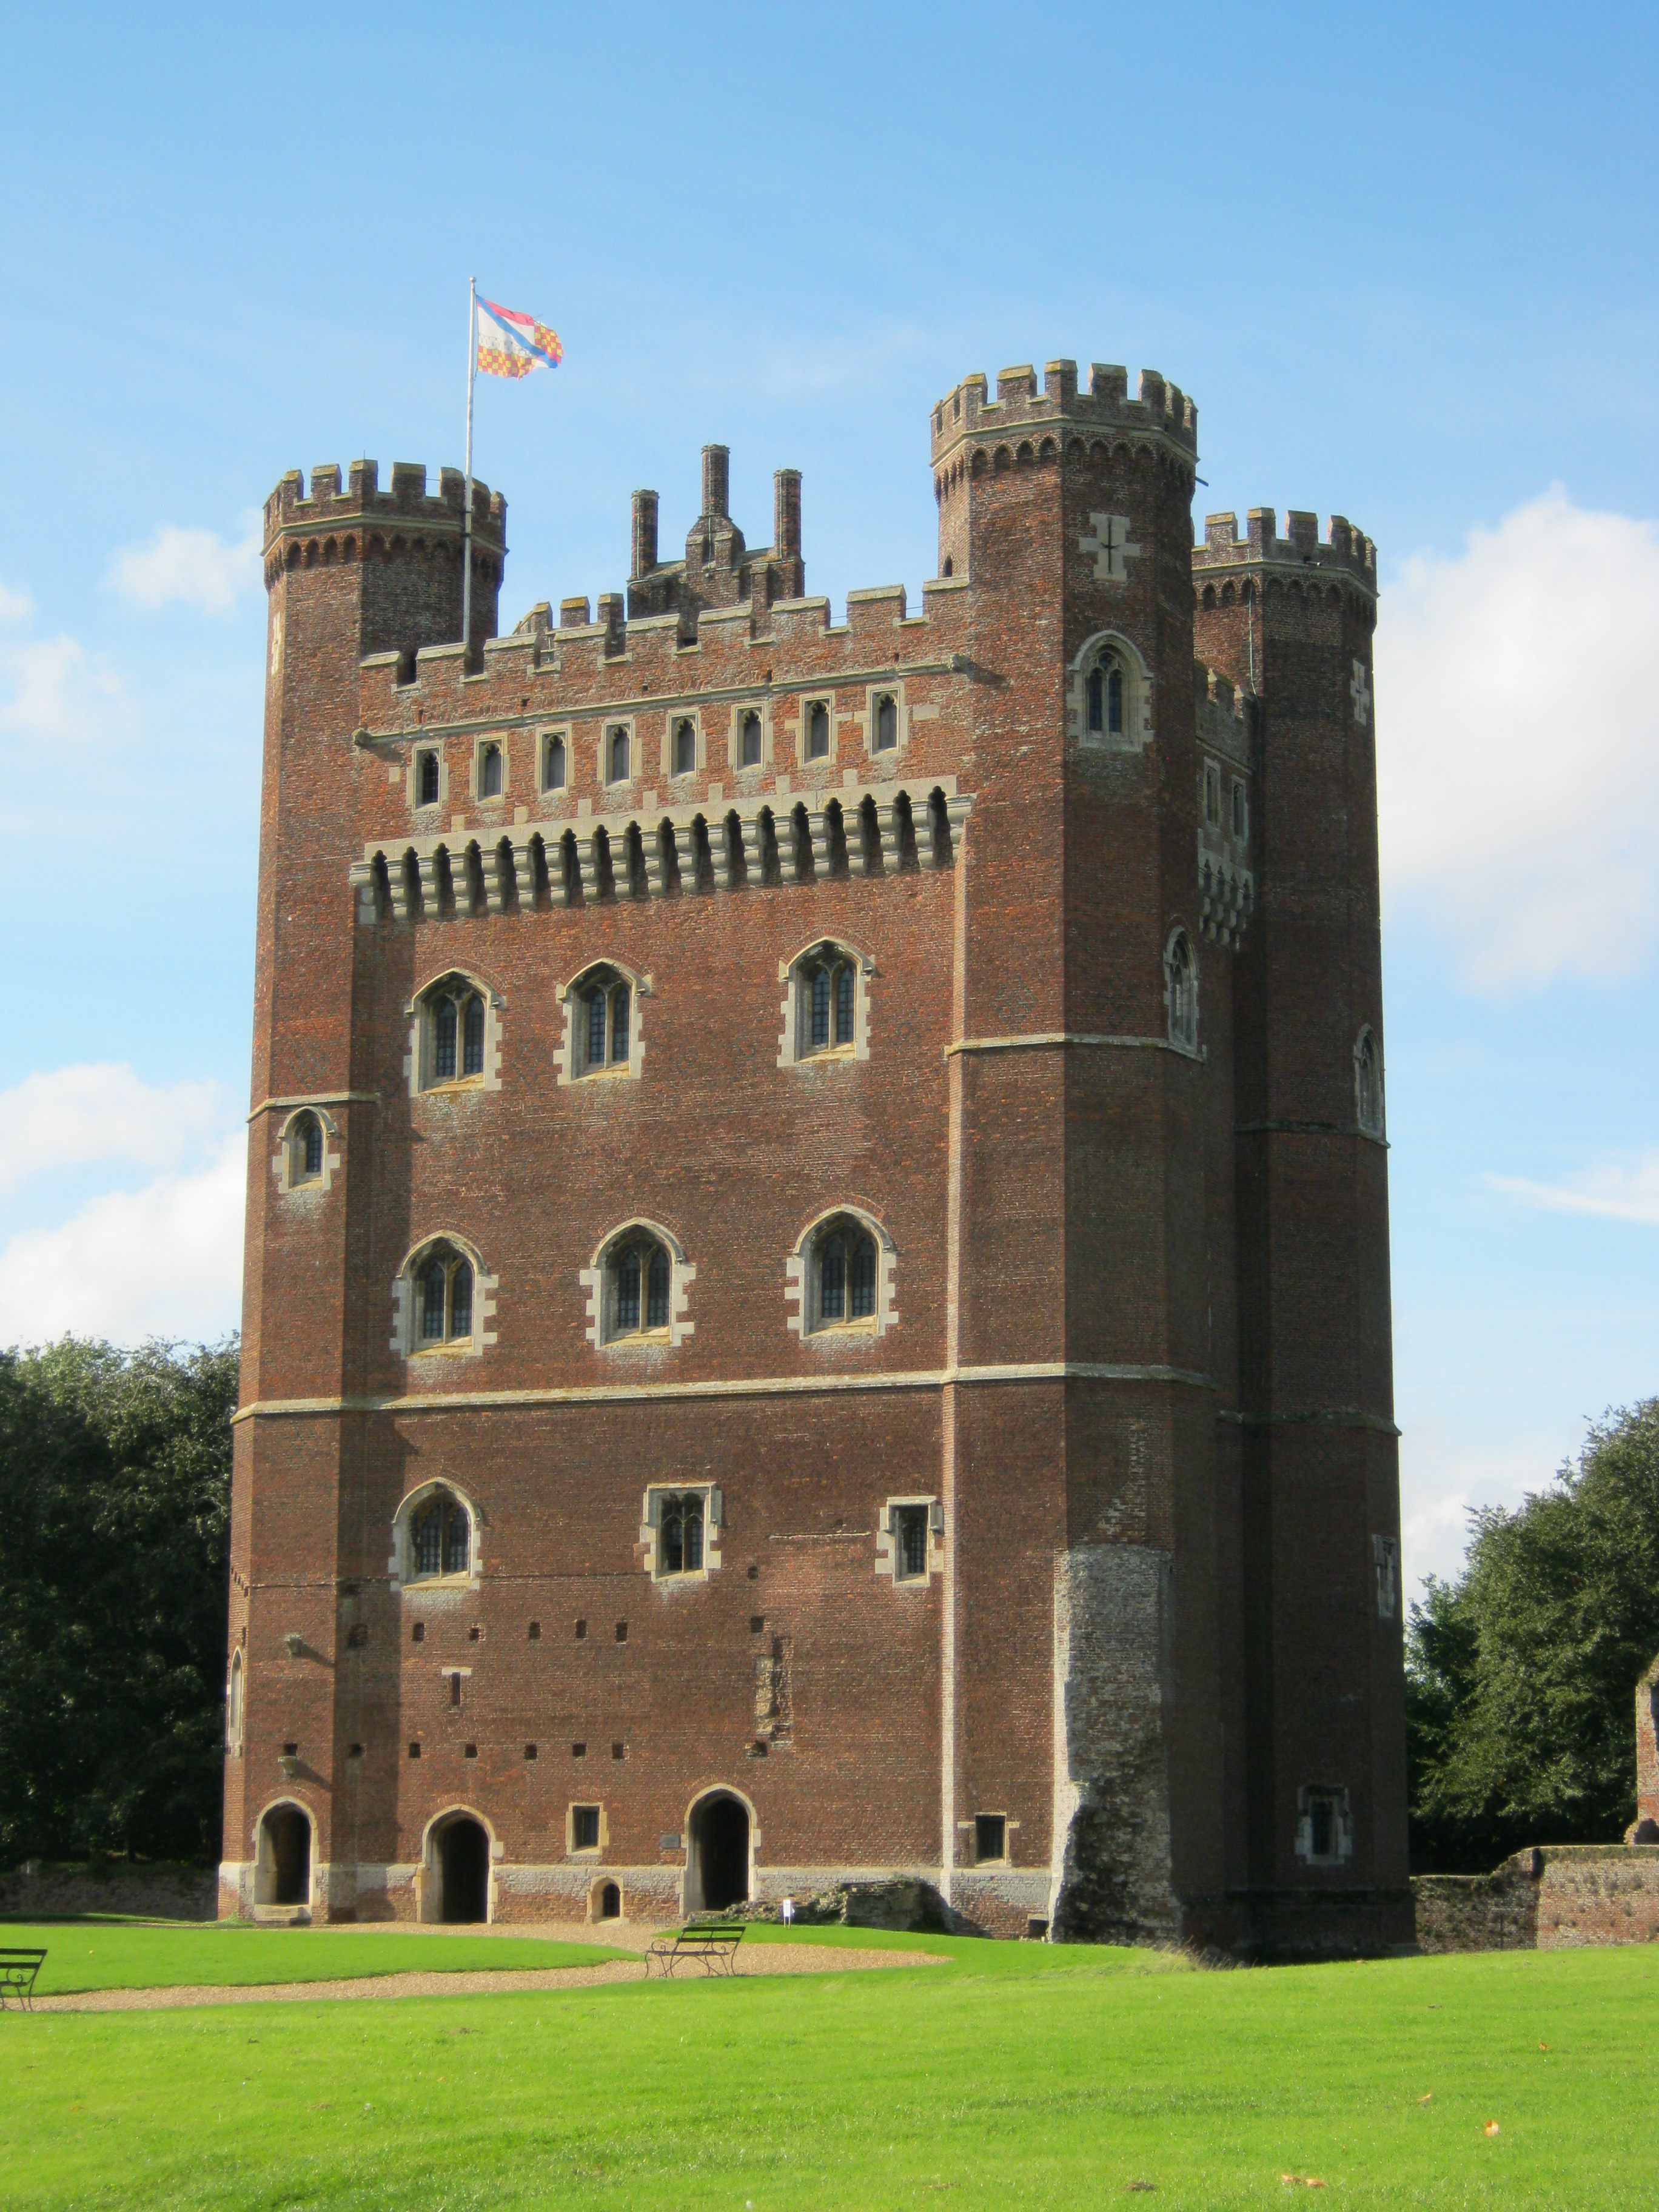 before i had read any detail about tattershall castle i had seen pictures of its red brick tower and had simply assumed that it was a fake castle